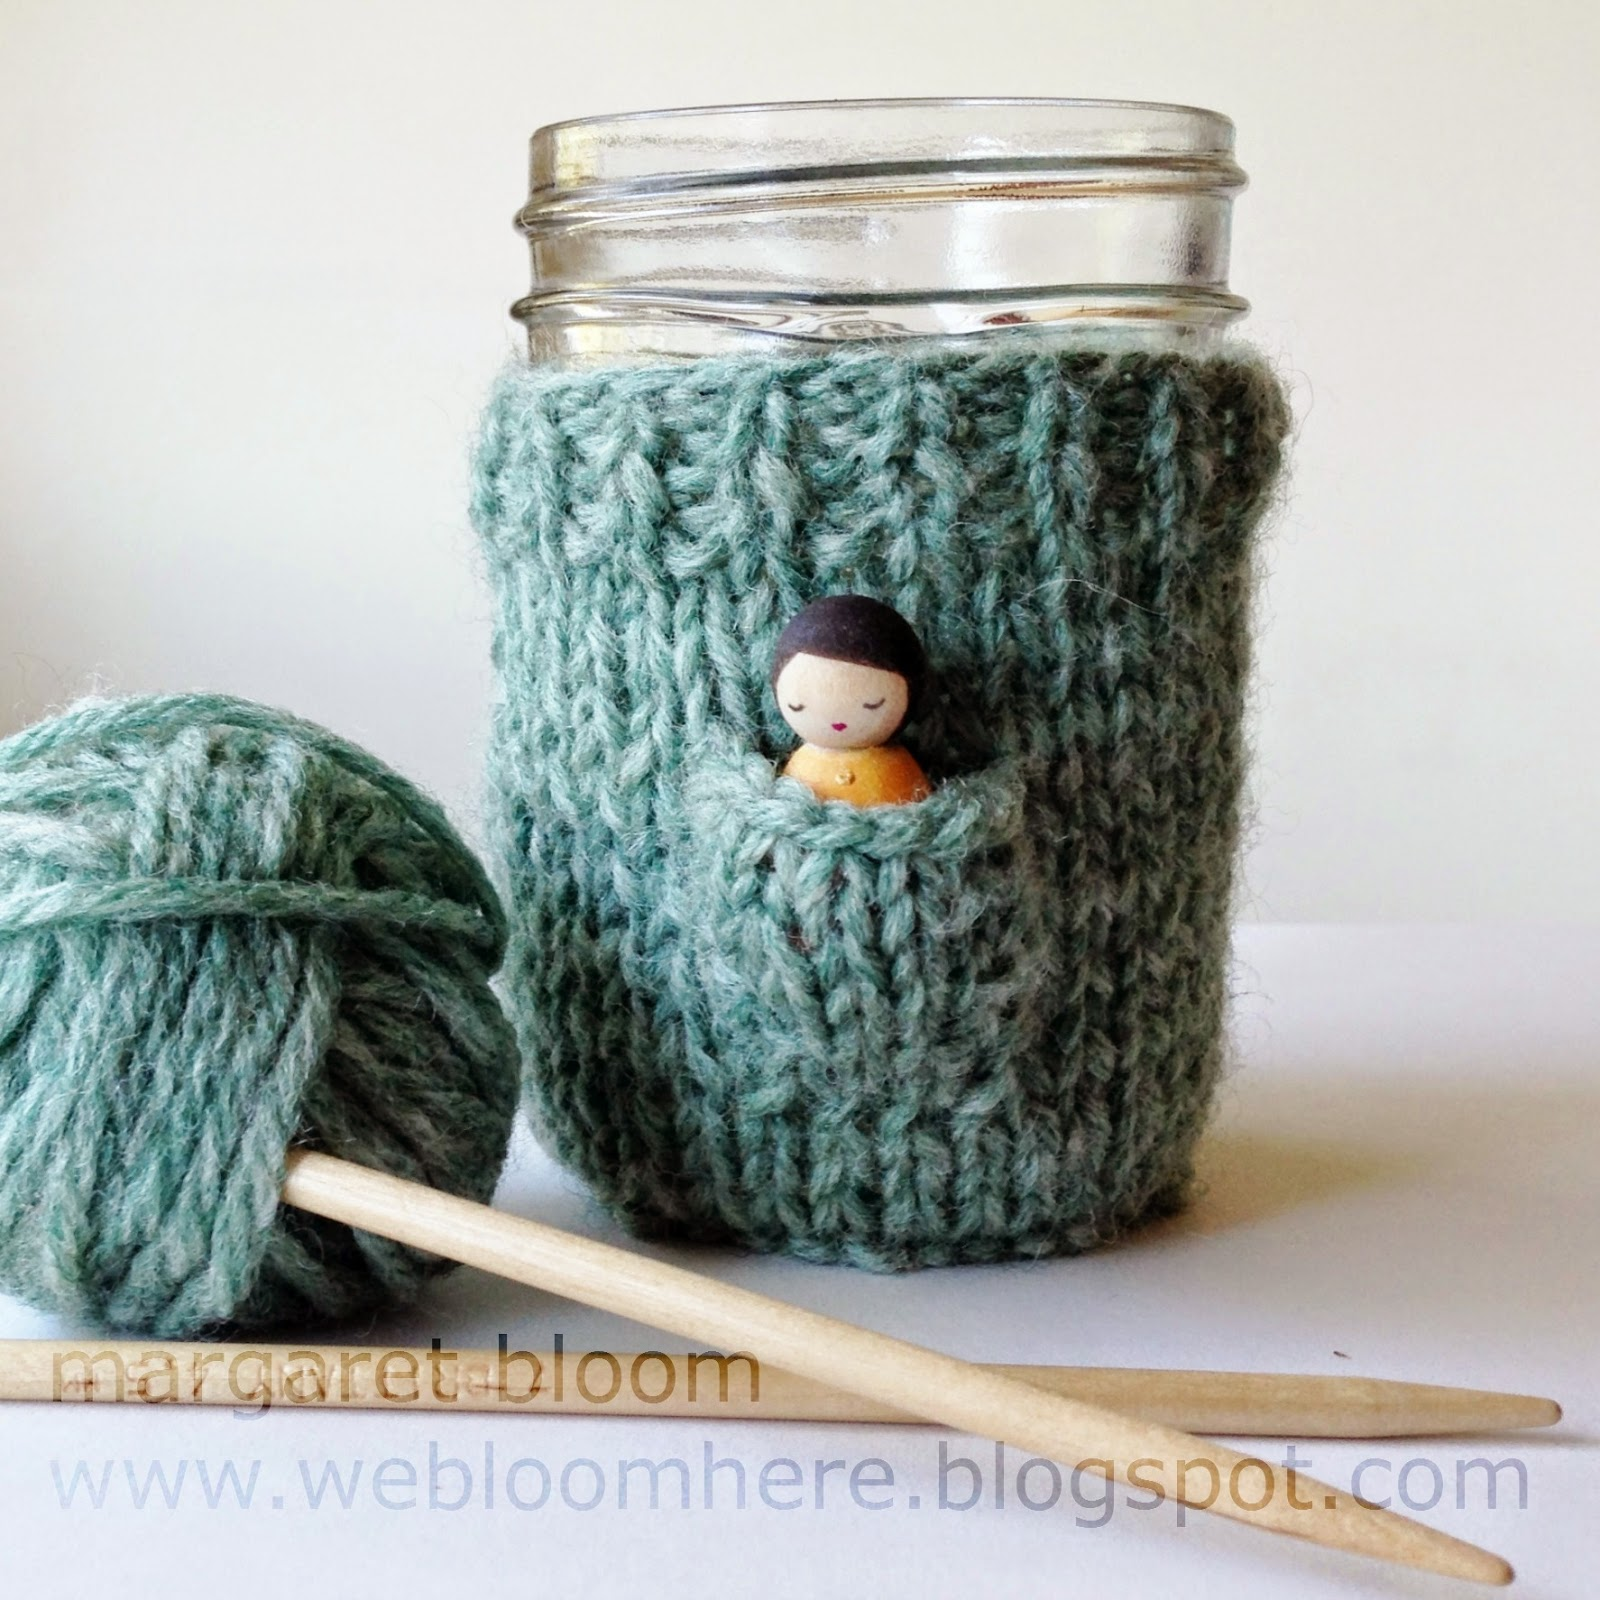 we bloom here: knitting a fairy cup cozy